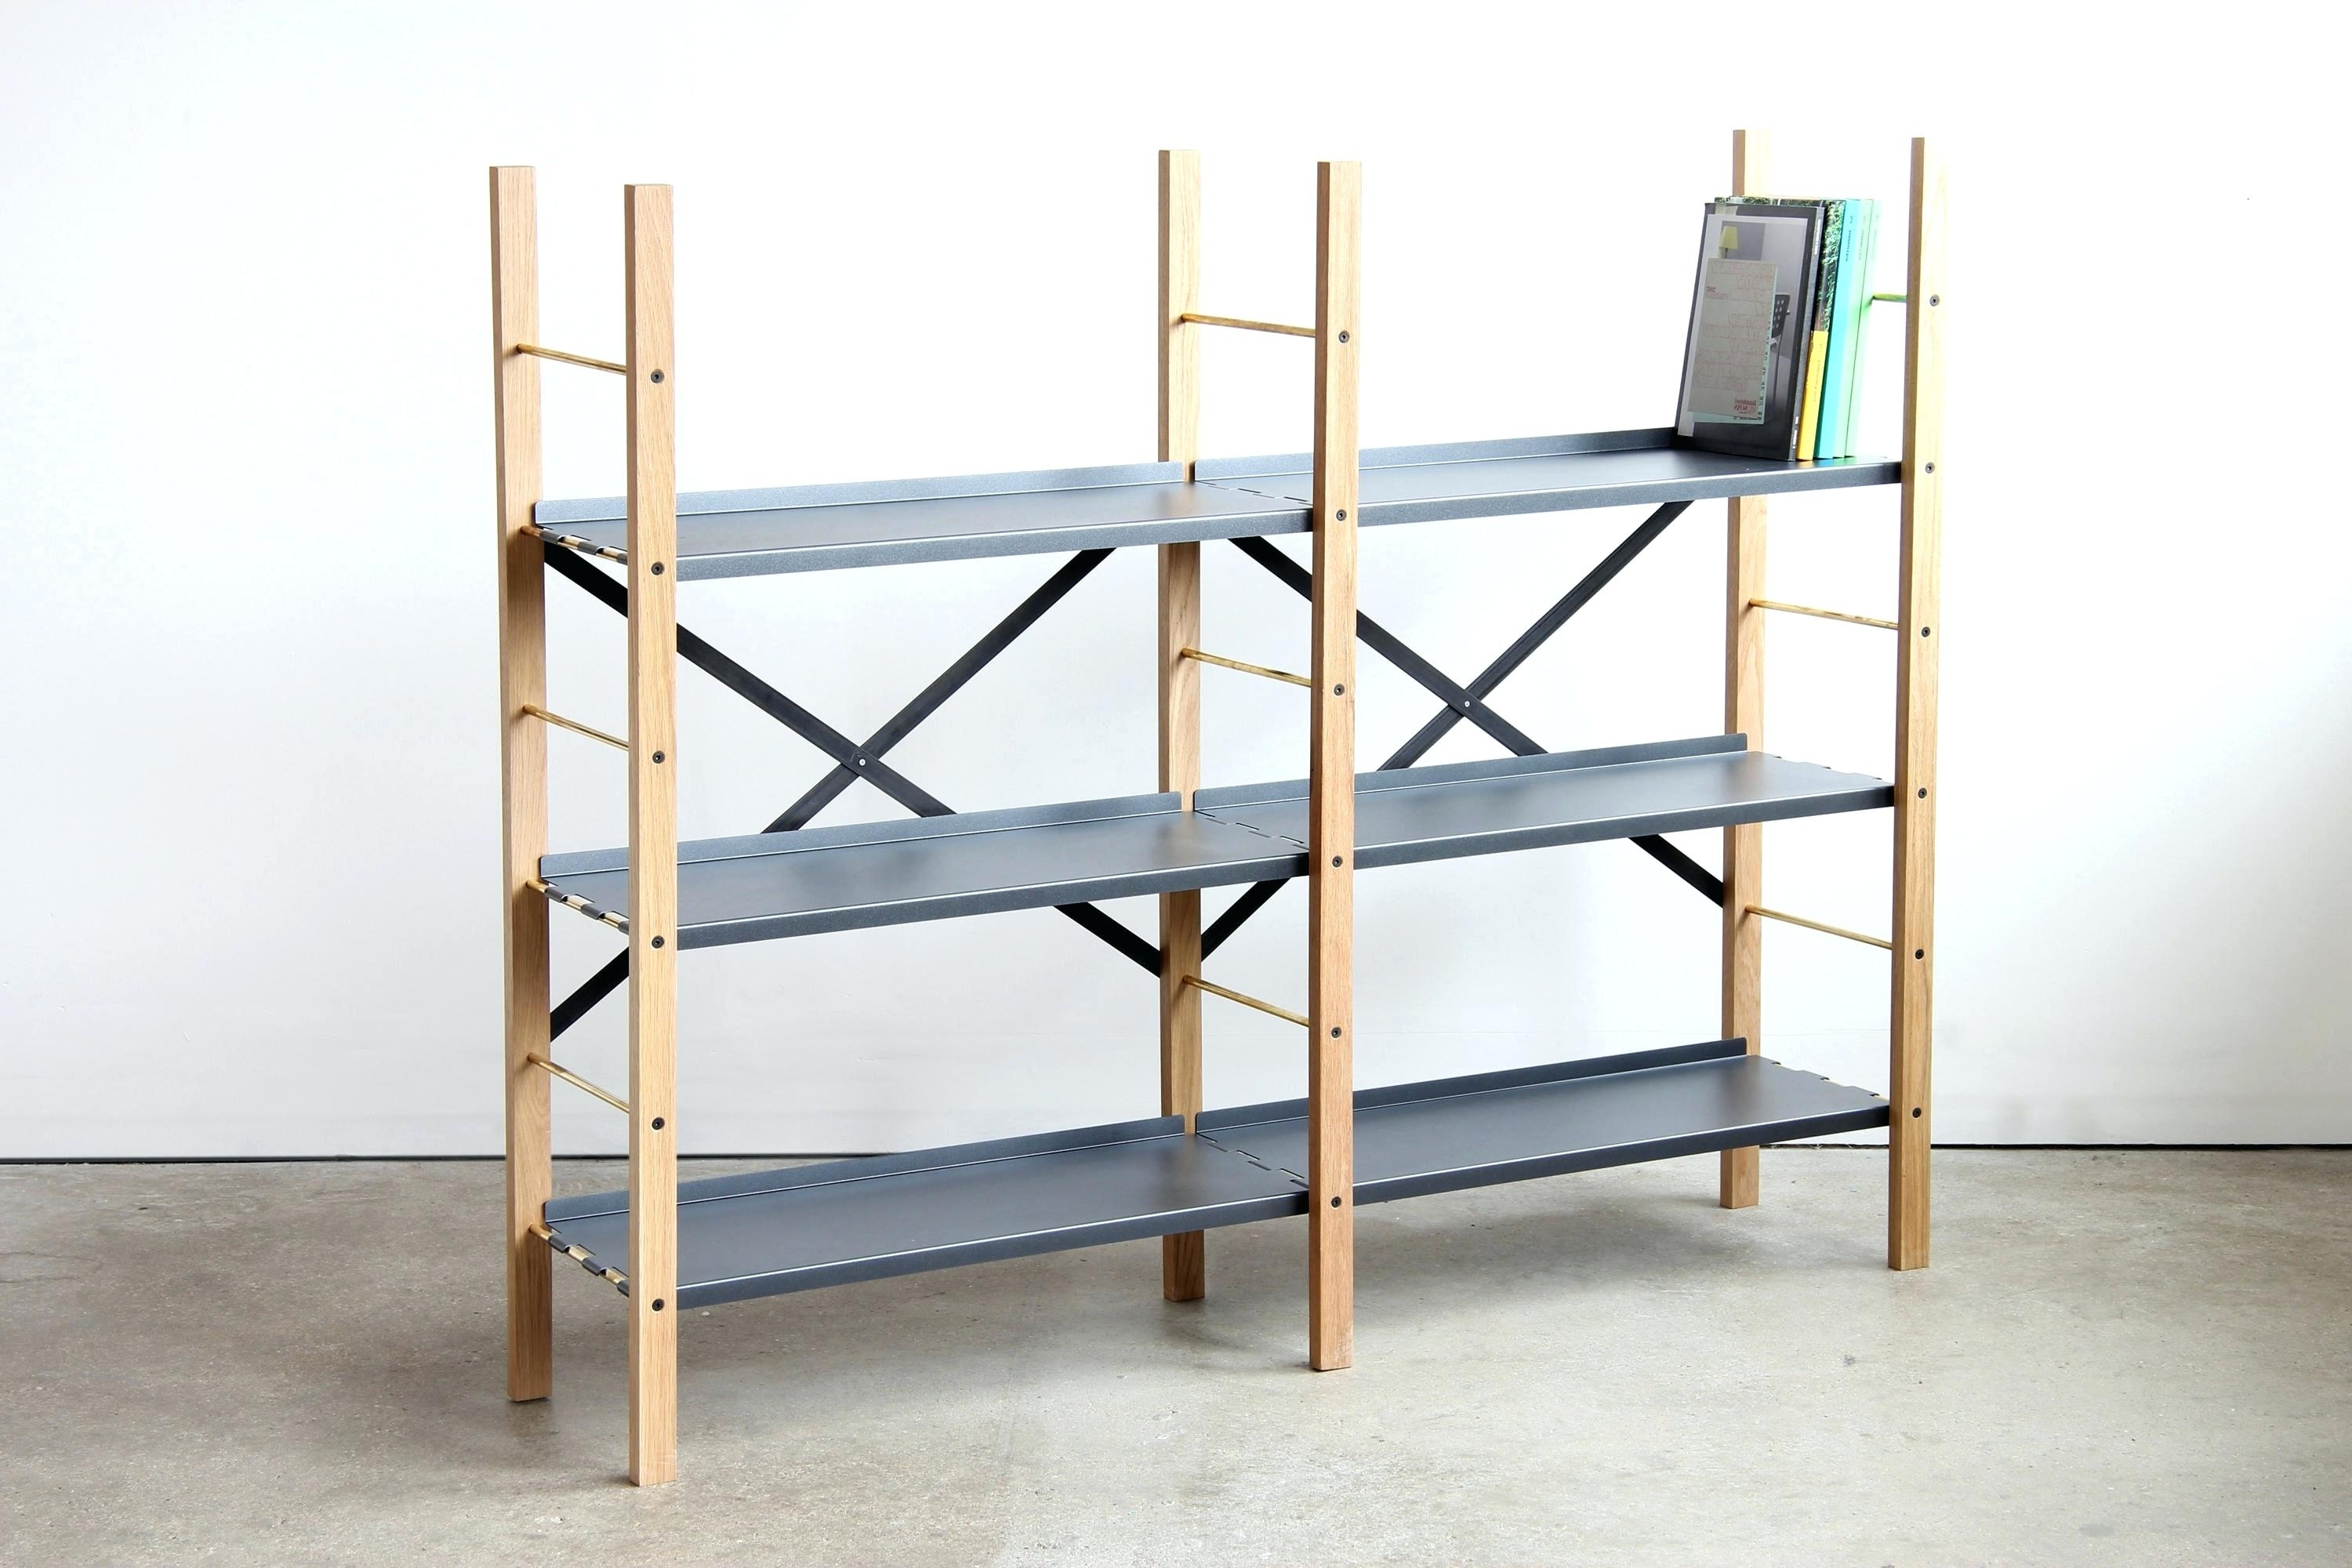 Widely Used Free Standing Shelving Units Wood Intended For Decoration: Wood Freestanding Shelving Unit (View 15 of 15)